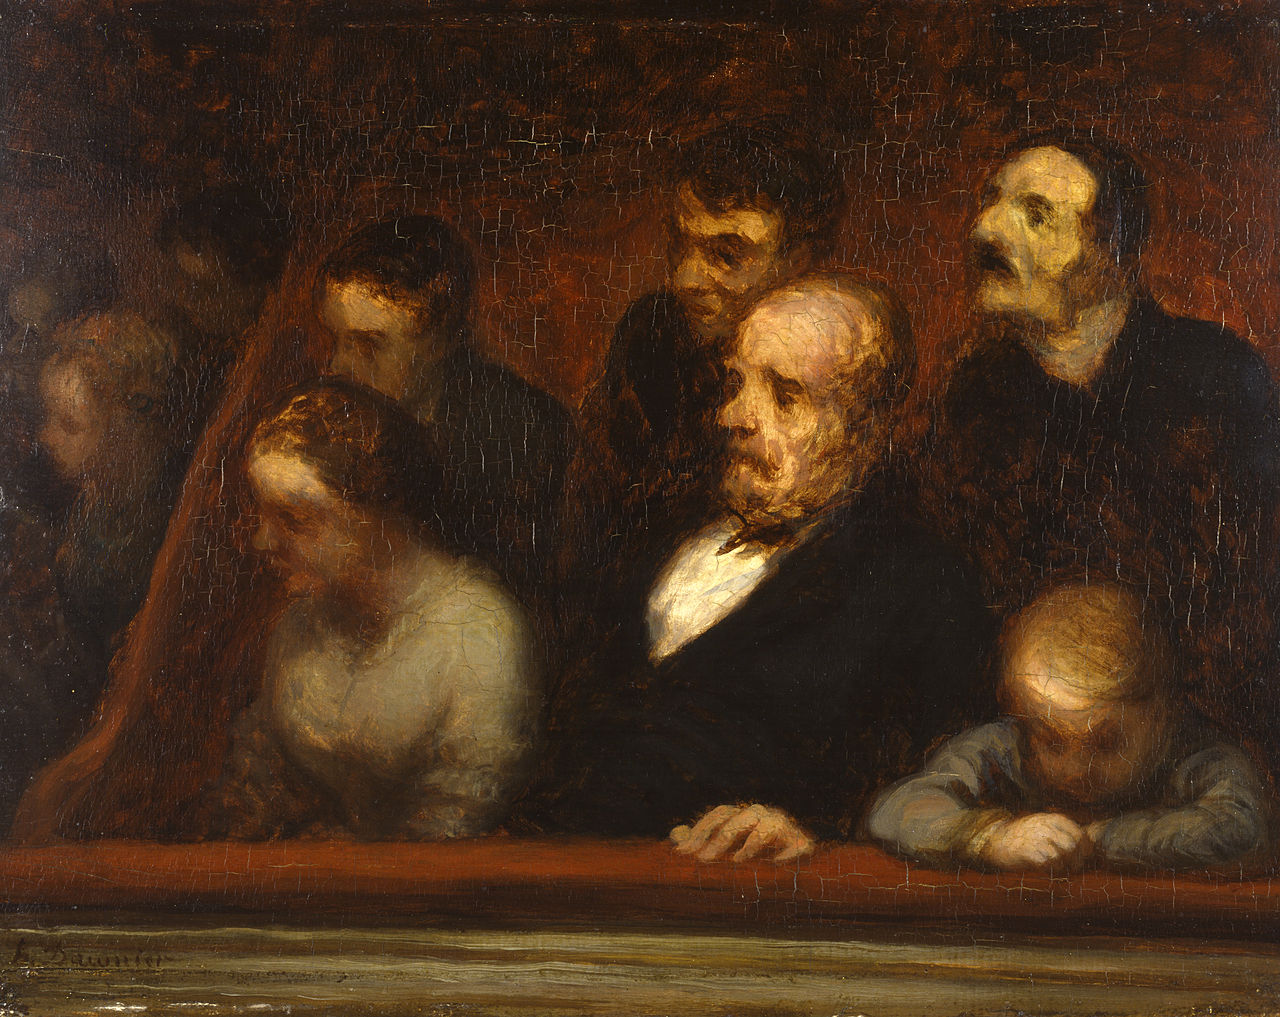 https://upload.wikimedia.org/wikipedia/commons/thumb/0/05/Honor%C3%A9_Daumier_-_The_Loge_%28In_the_Theatre_Boxes%29_-_Walters_371988.jpg/1280px-Honor%C3%A9_Daumier_-_The_Loge_%28In_the_Theatre_Boxes%29_-_Walters_371988.jpg